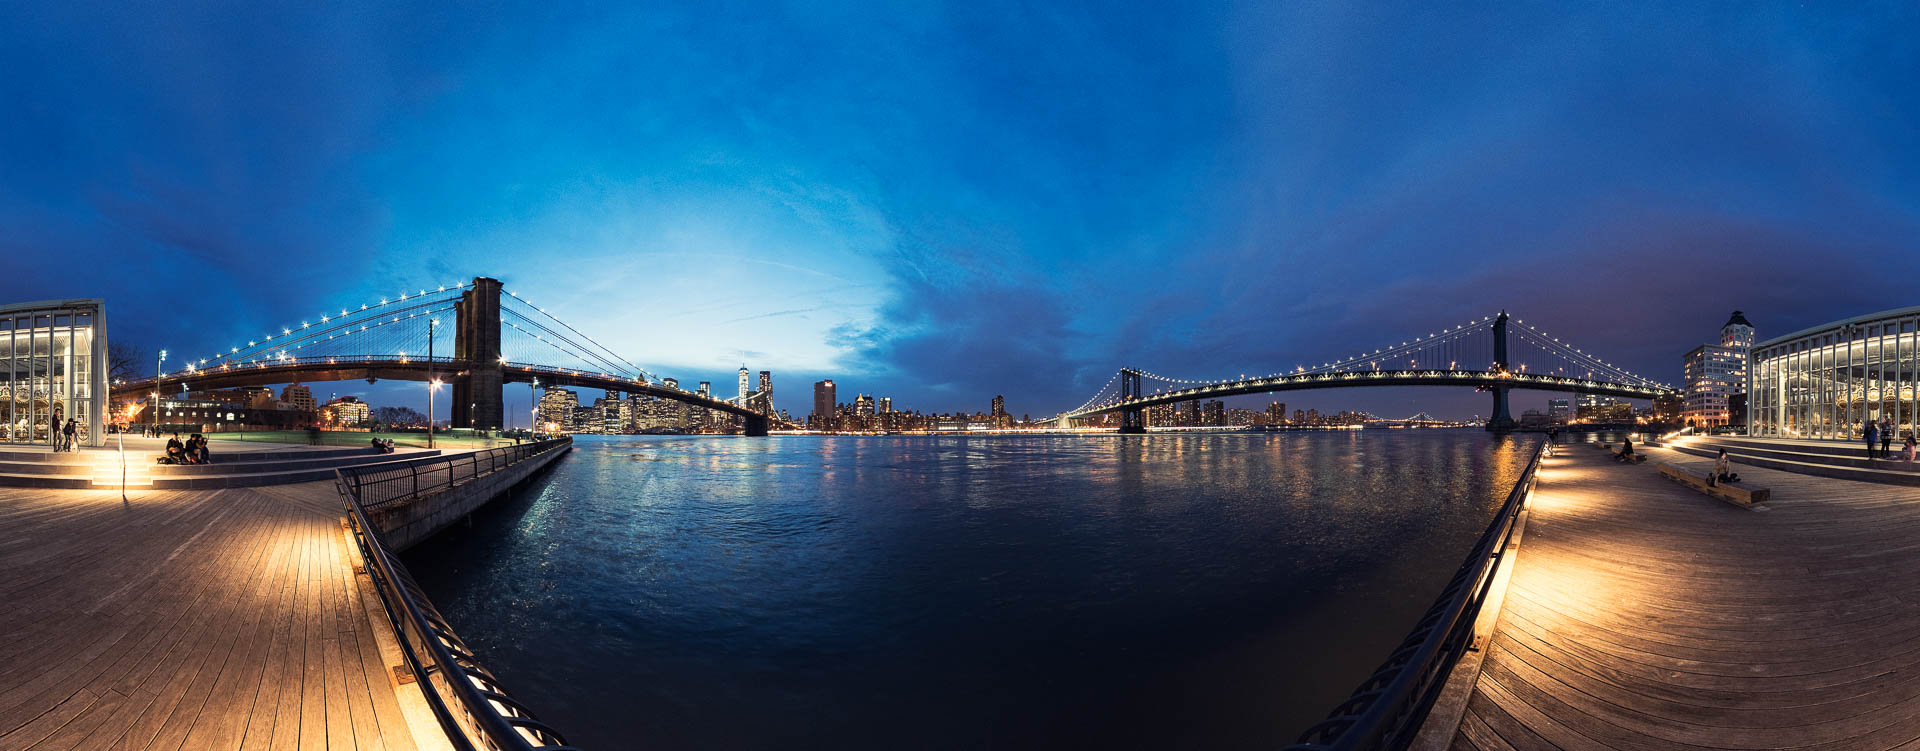 NYC DUMBO Brooklyn Bridge by Tobi Bohn Panorama 360 Fotograf